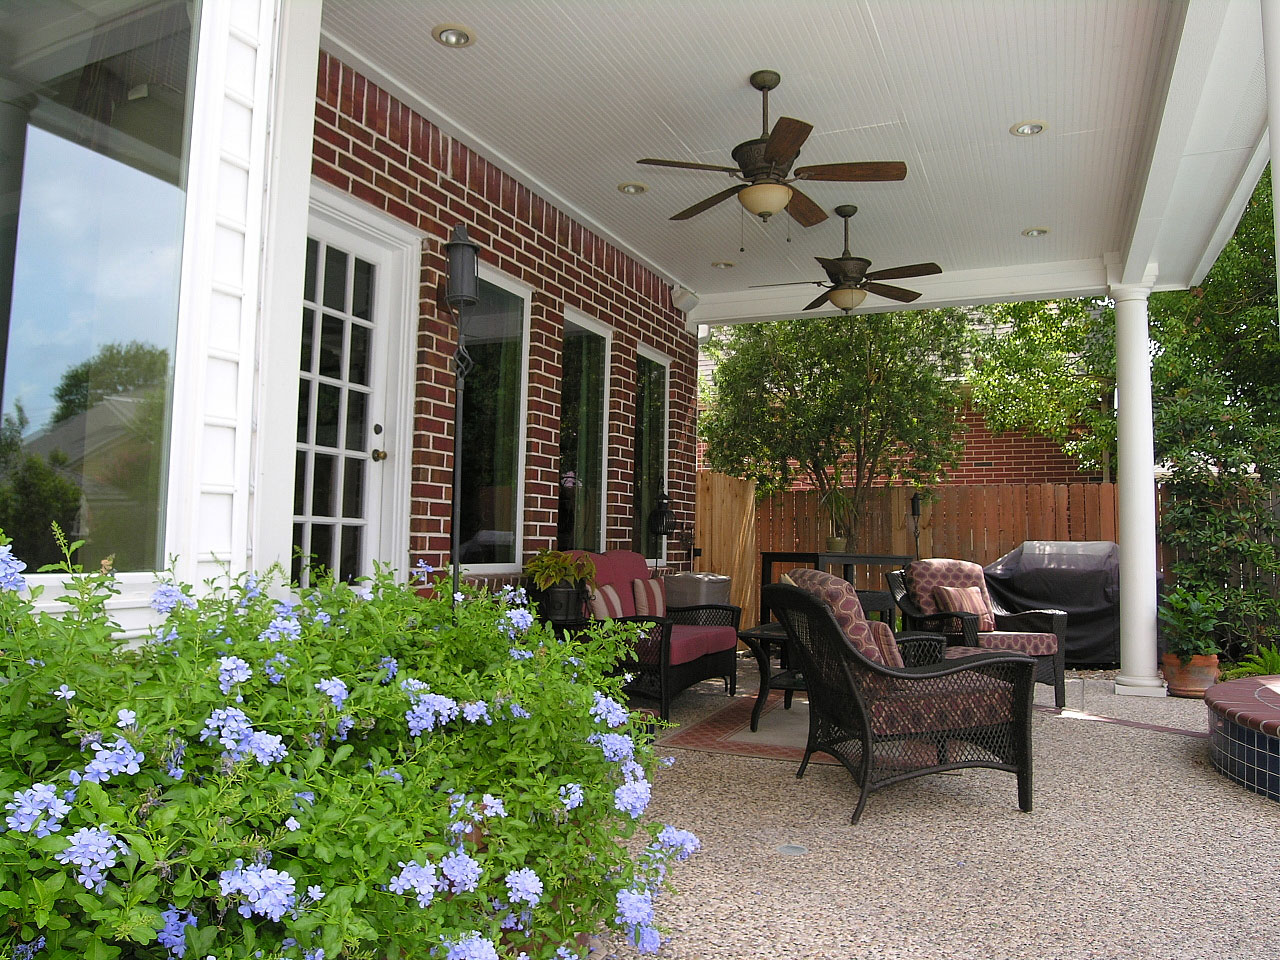 Twin Ceiling Fan Units In The Porch Luxurious Outdoor Furniture For Red Bricks Wall